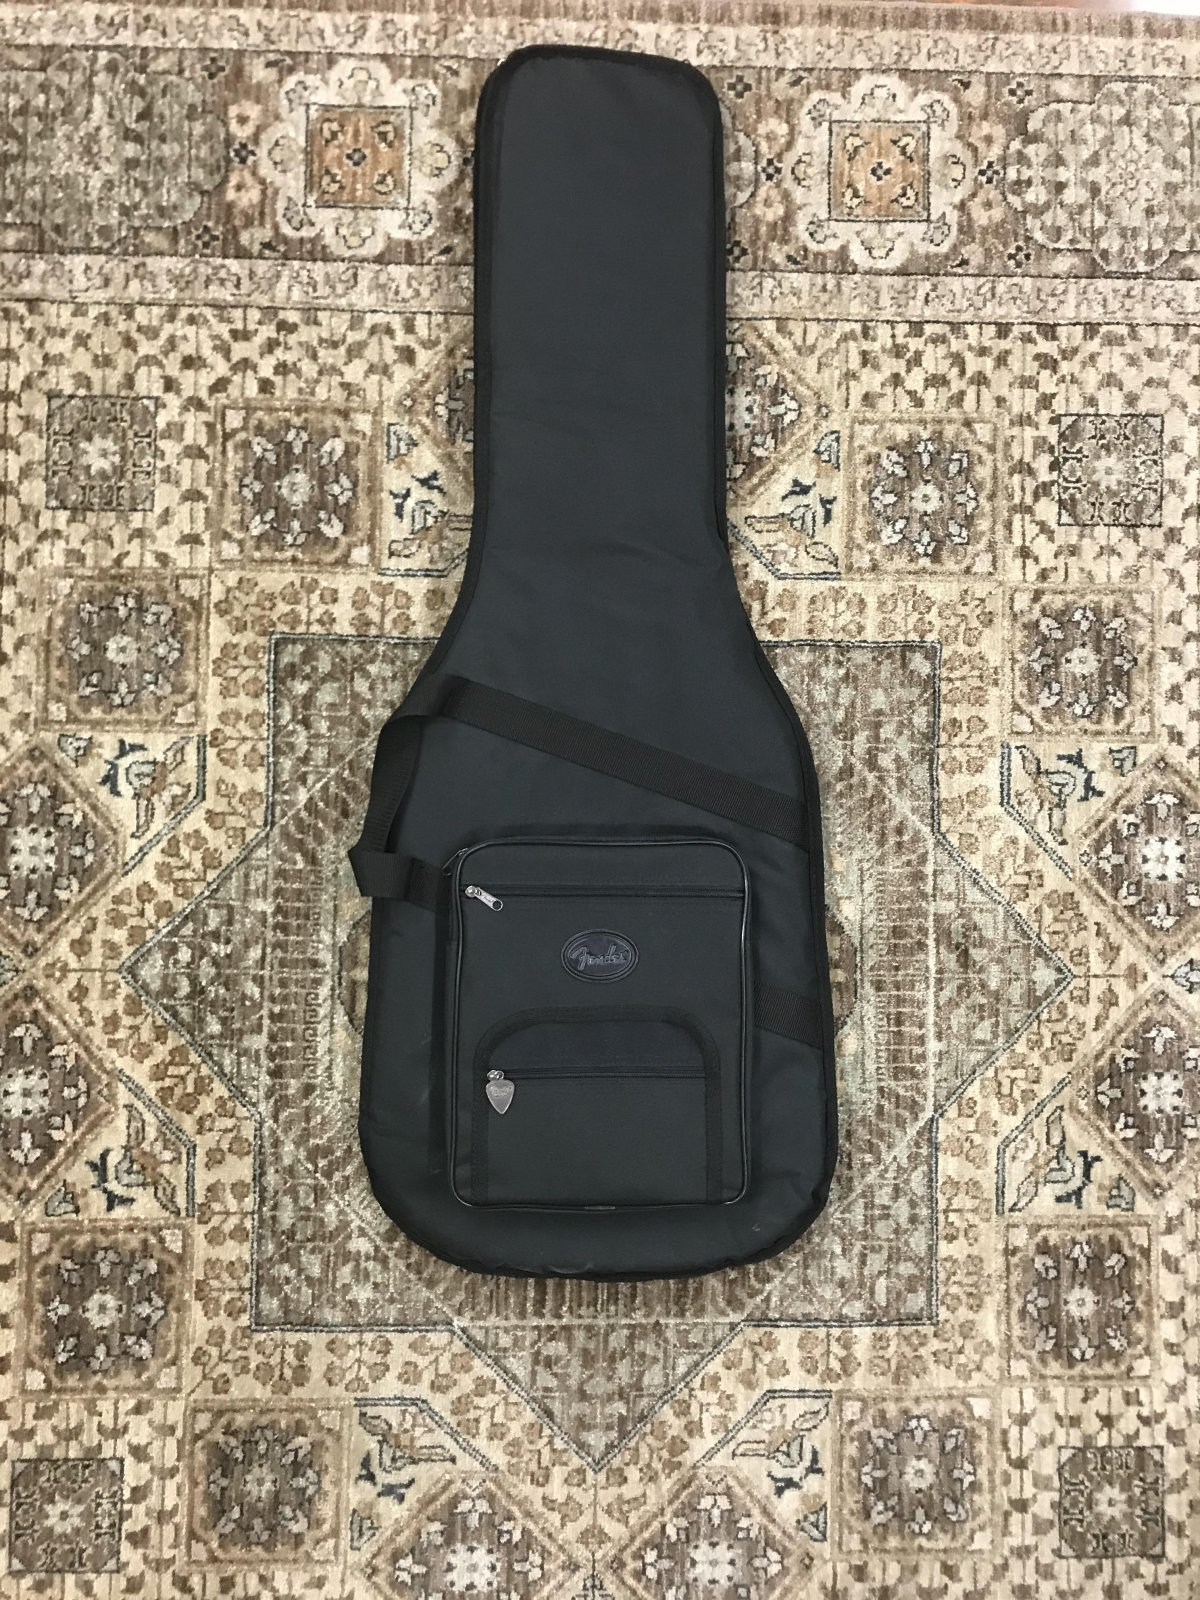 Used Fender Deluxe Electric Gig Bag